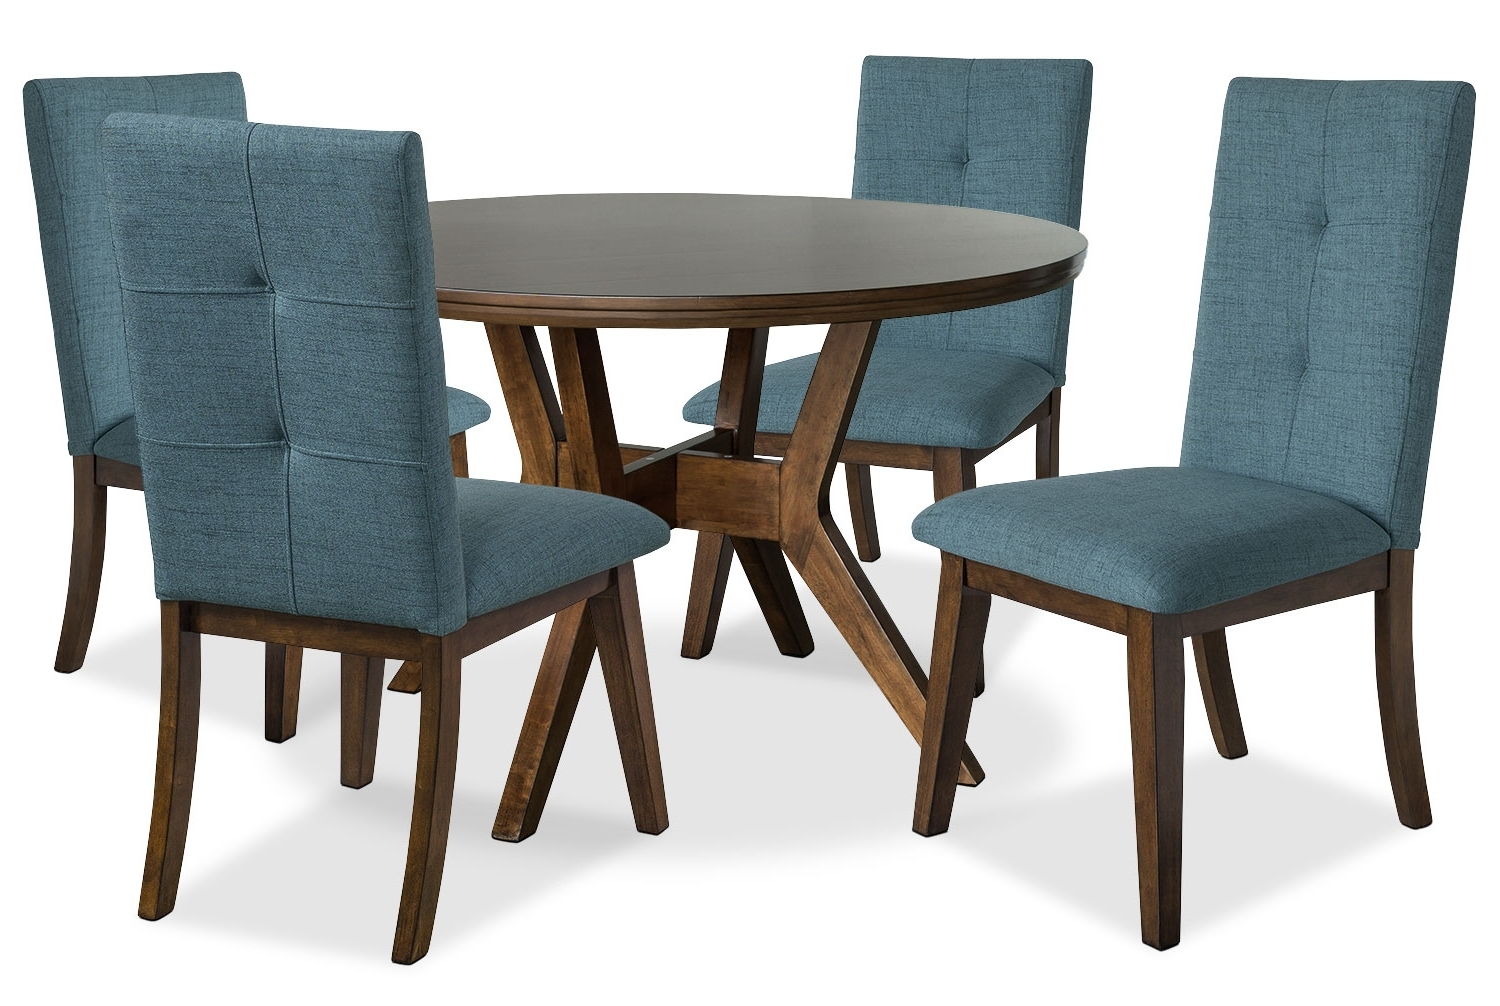 Preferred Round Wood Dining Table 5 Chairs 2 Leaves Regarding Jaxon 6 Piece Rectangle Dining Sets With Bench & Wood Chairs (View 19 of 25)